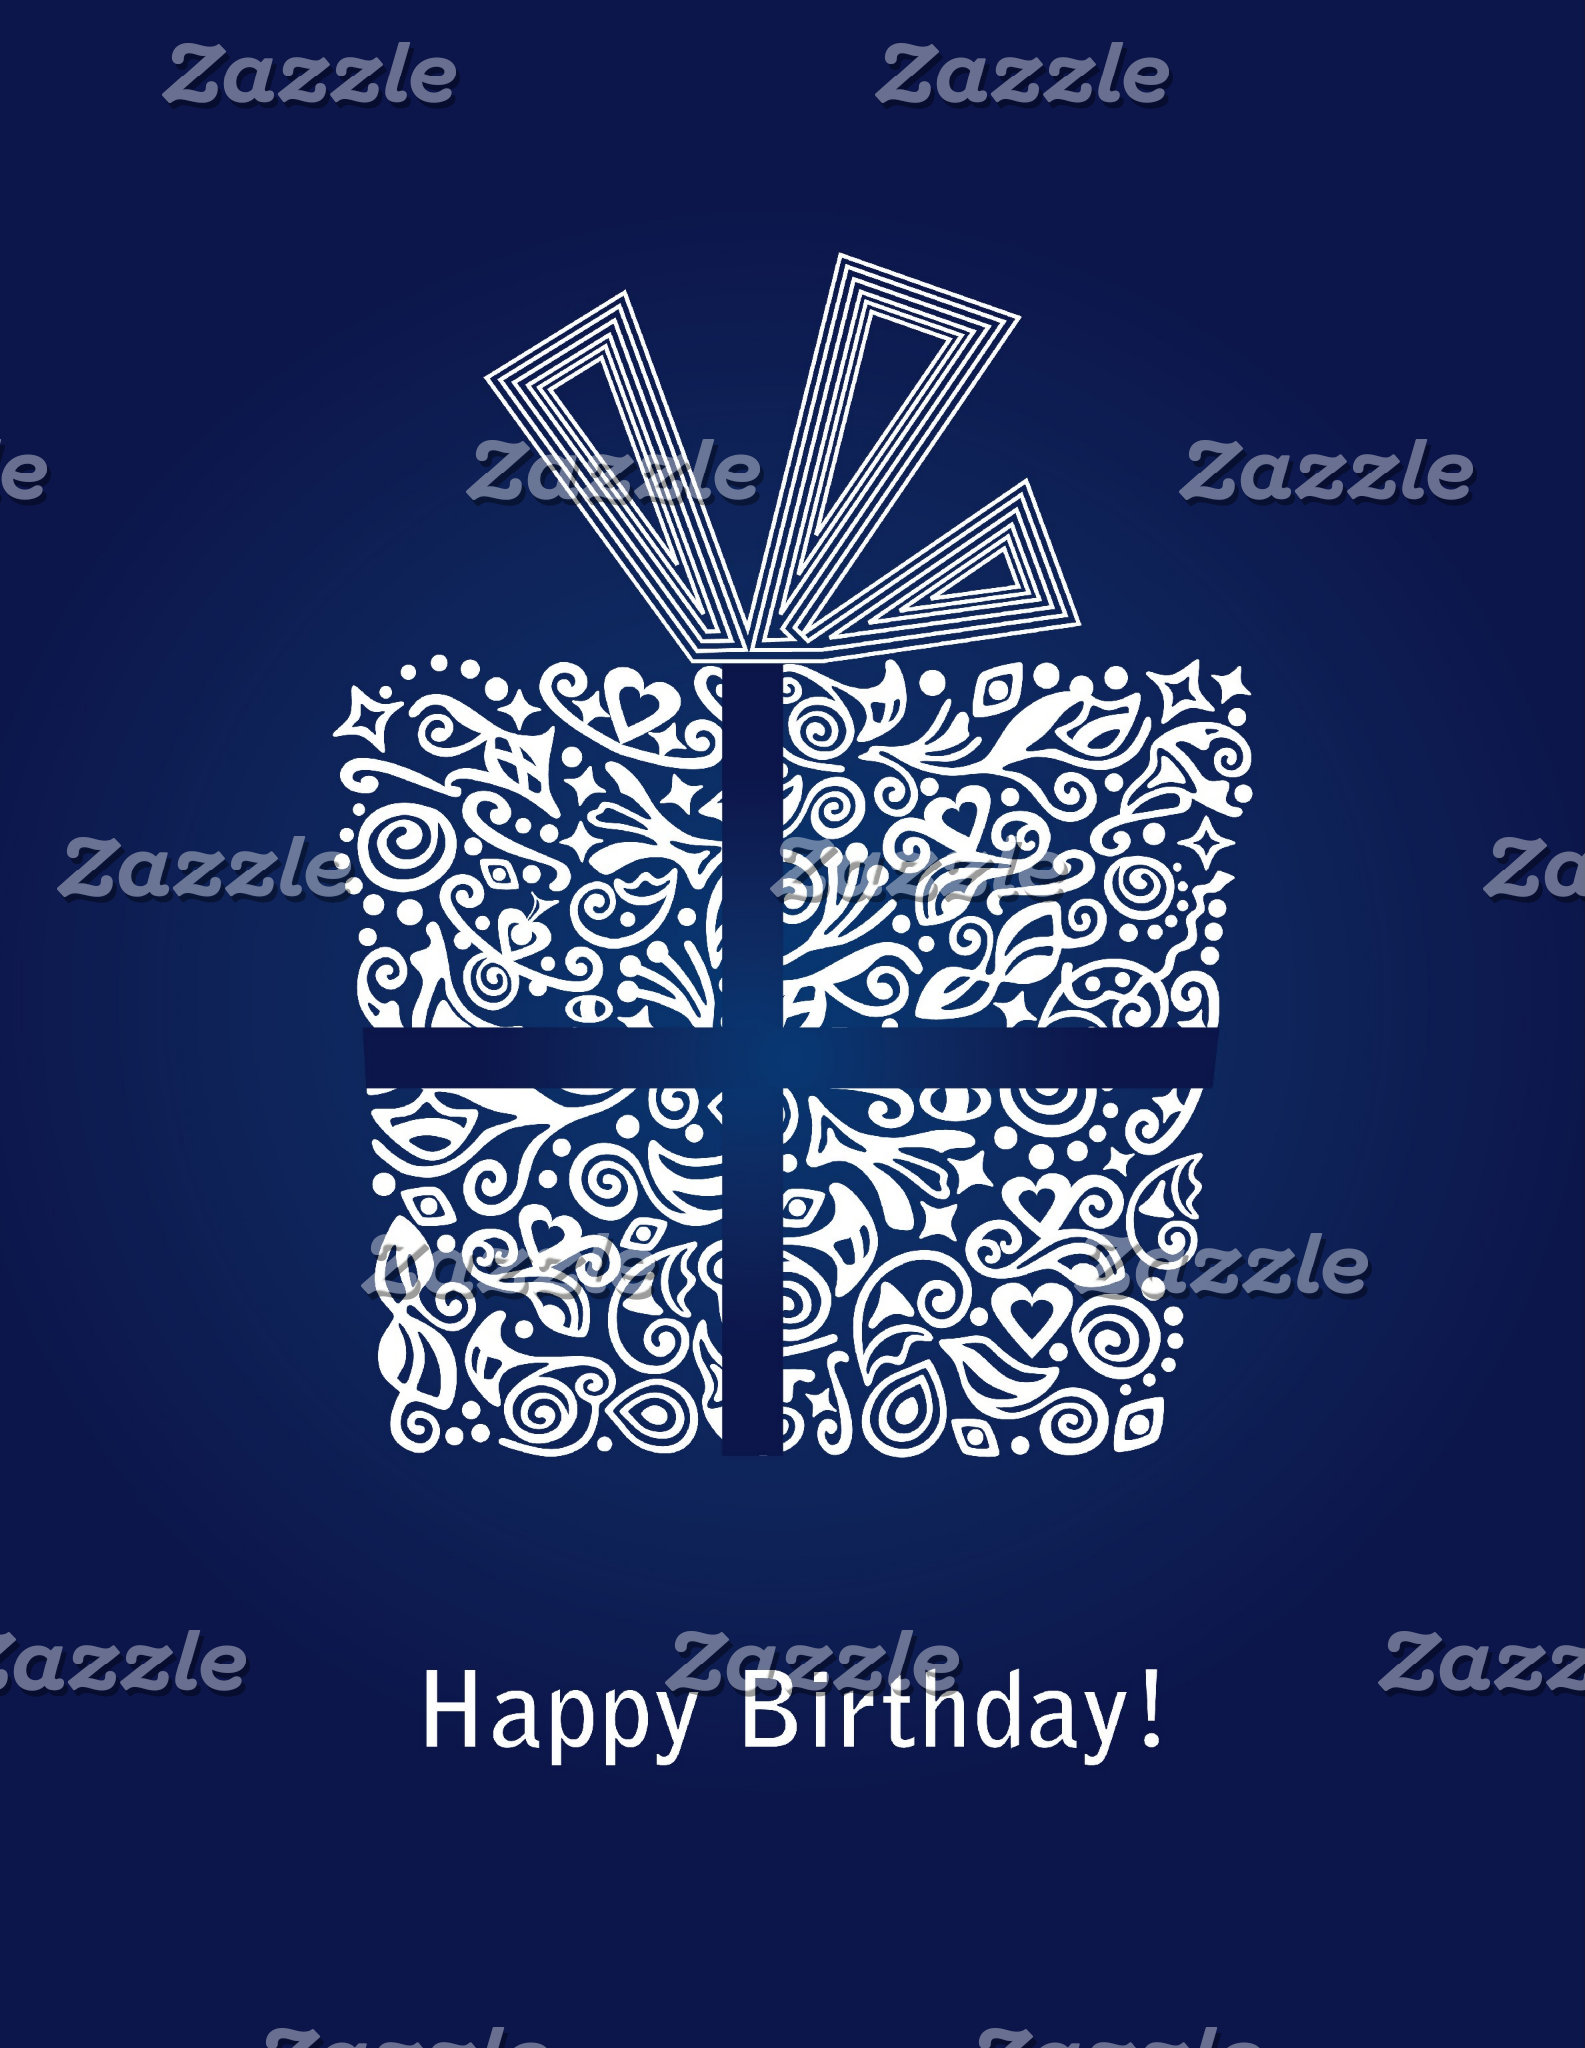 Birthday Greeting Cards and gifts